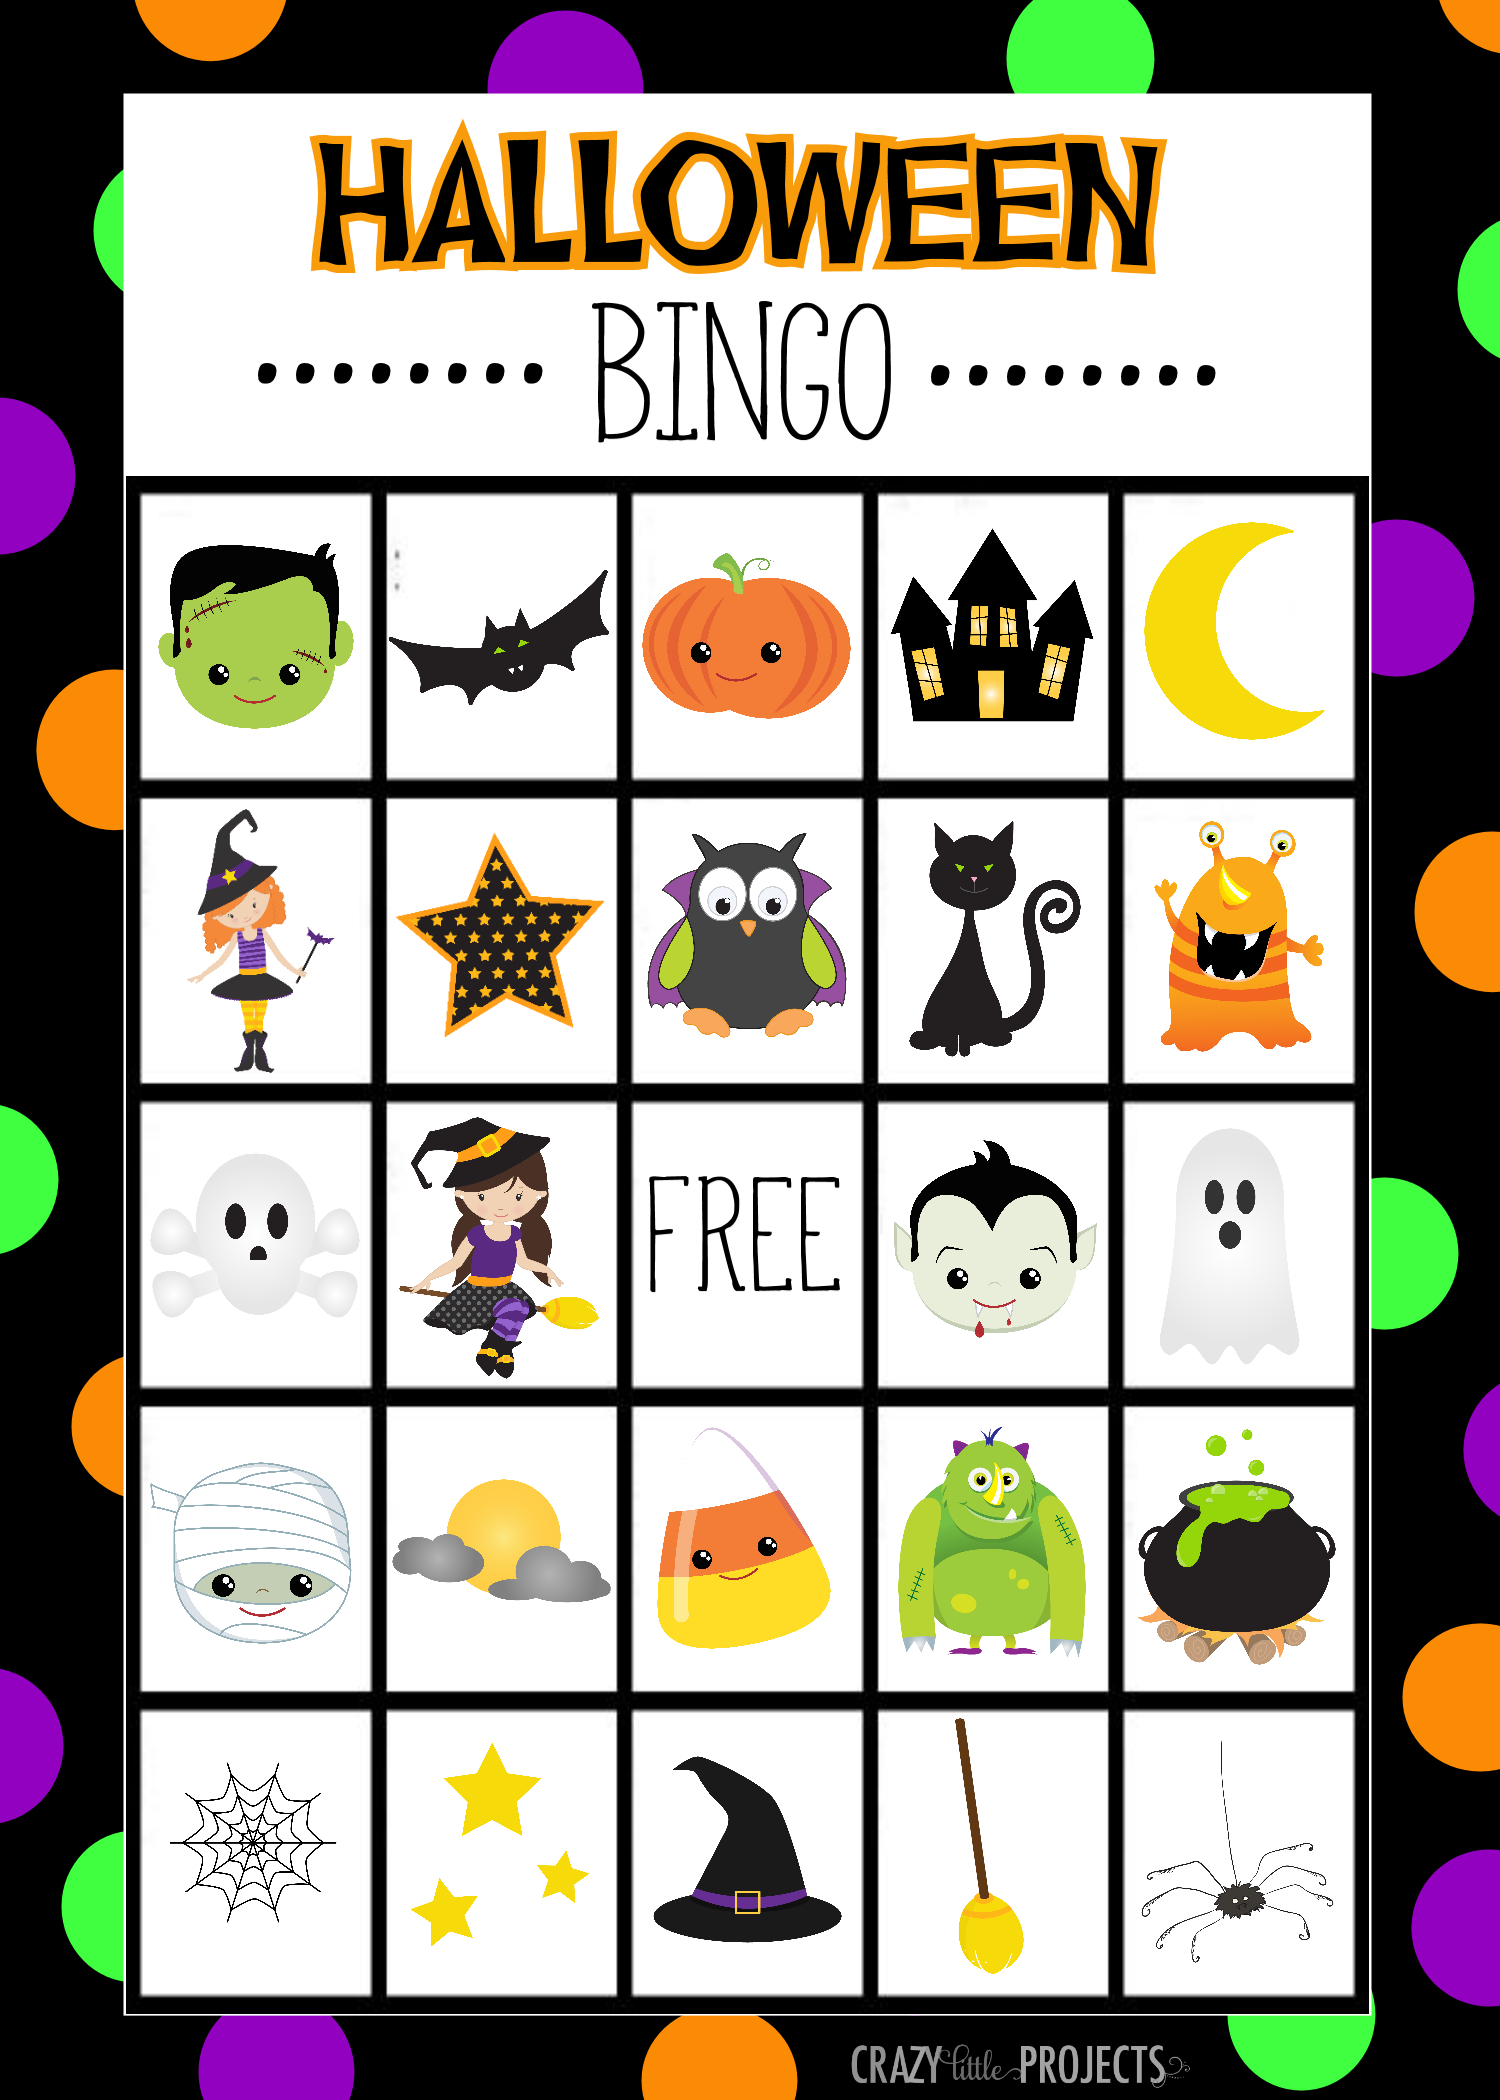 Free Printable Halloween Bingo Cardscrazy Little Projects - Free Printable Halloween Party Games